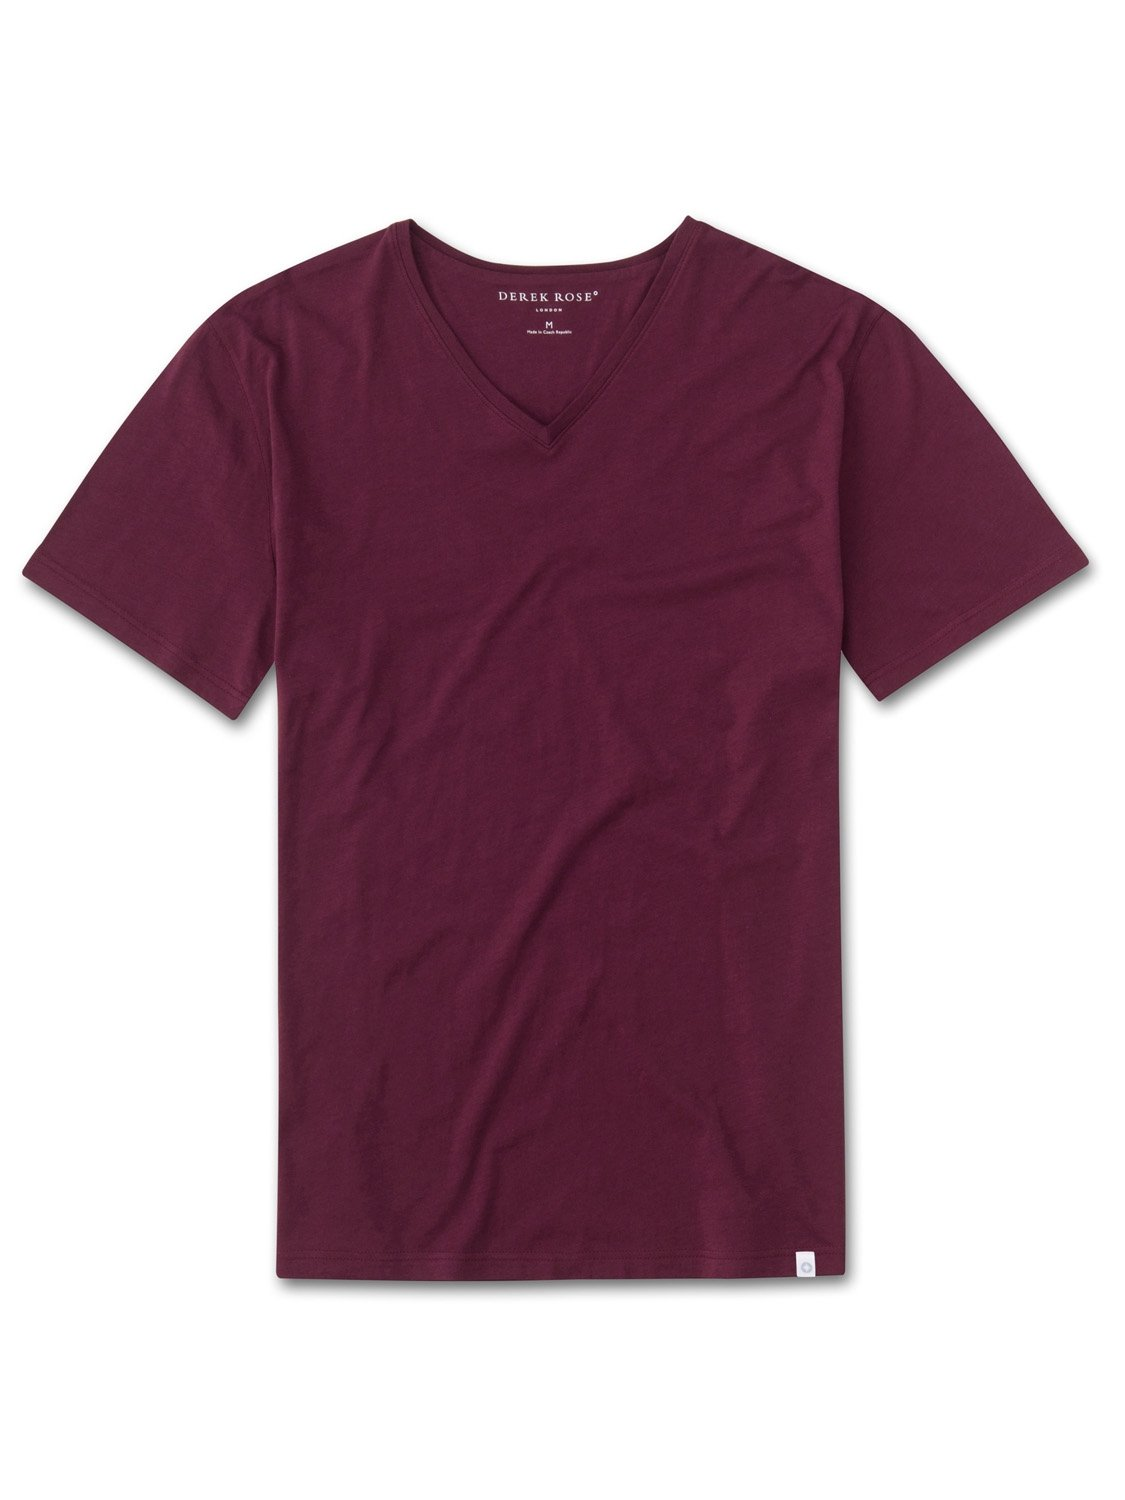 Men's Short Sleeve V-Neck T-Shirt Riley 2 Pima Cotton Burgundy